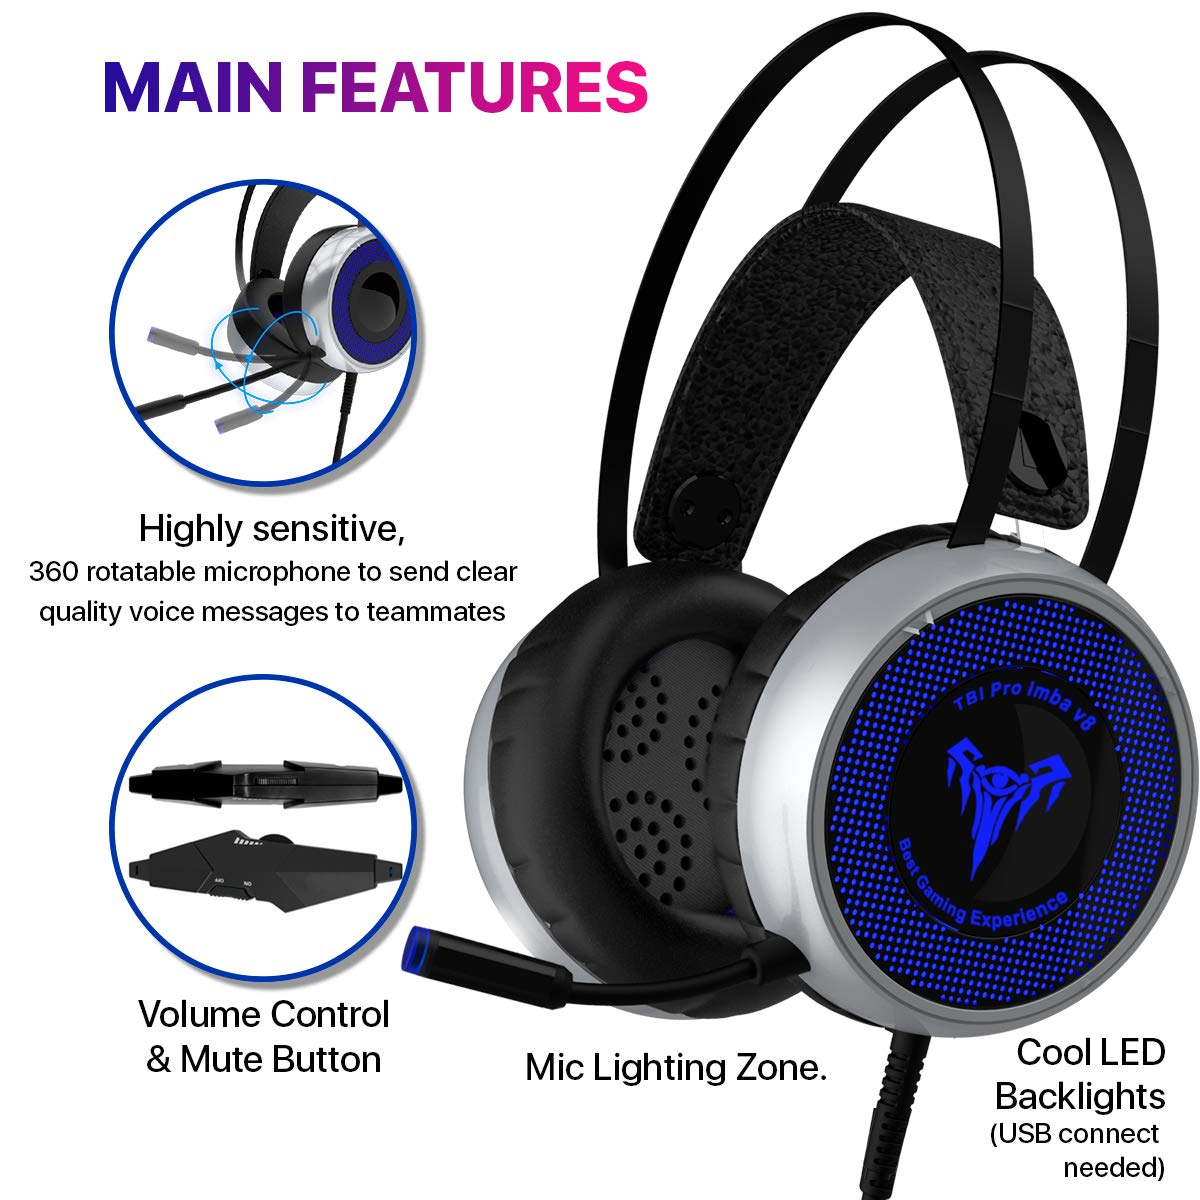 [Newest 2019] Gaming Headset for Xbox One, S, PS4, PC with LED Soft Breathing Earmuffs, Adjustable Microphone, Comfortable Mute & Volume Control, 3.5mm Adapter for Laptop, PS3, Nintendo by TBI Pro (Image #3)